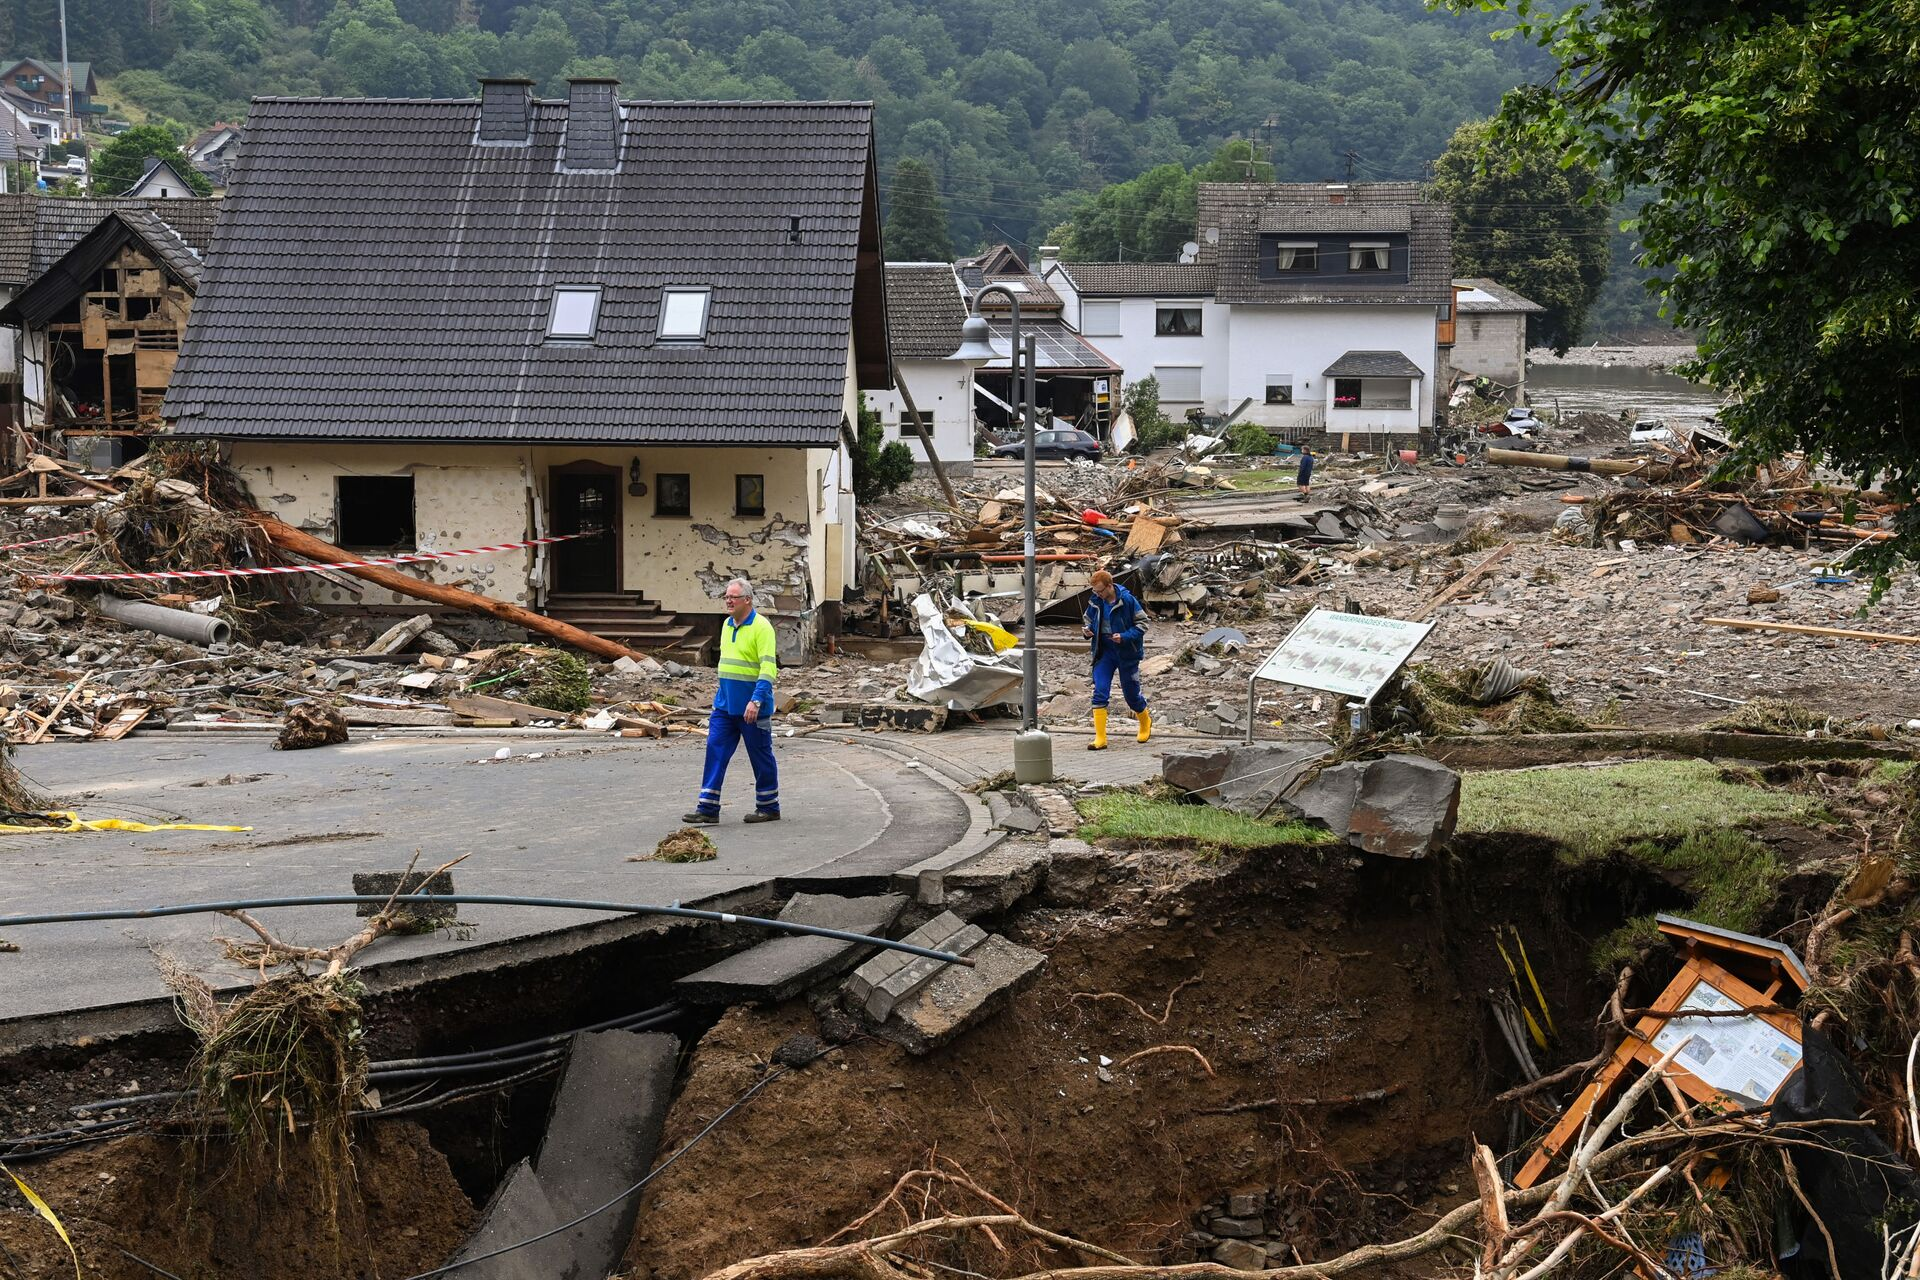 Two men walk on a partially slipped road amid destroyed houses after the floods caused major damage in Schuld near Bad Neuenahr-Ahrweiler, western Germany, on July 16, 2021. - Sputnik International, 1920, 07.09.2021